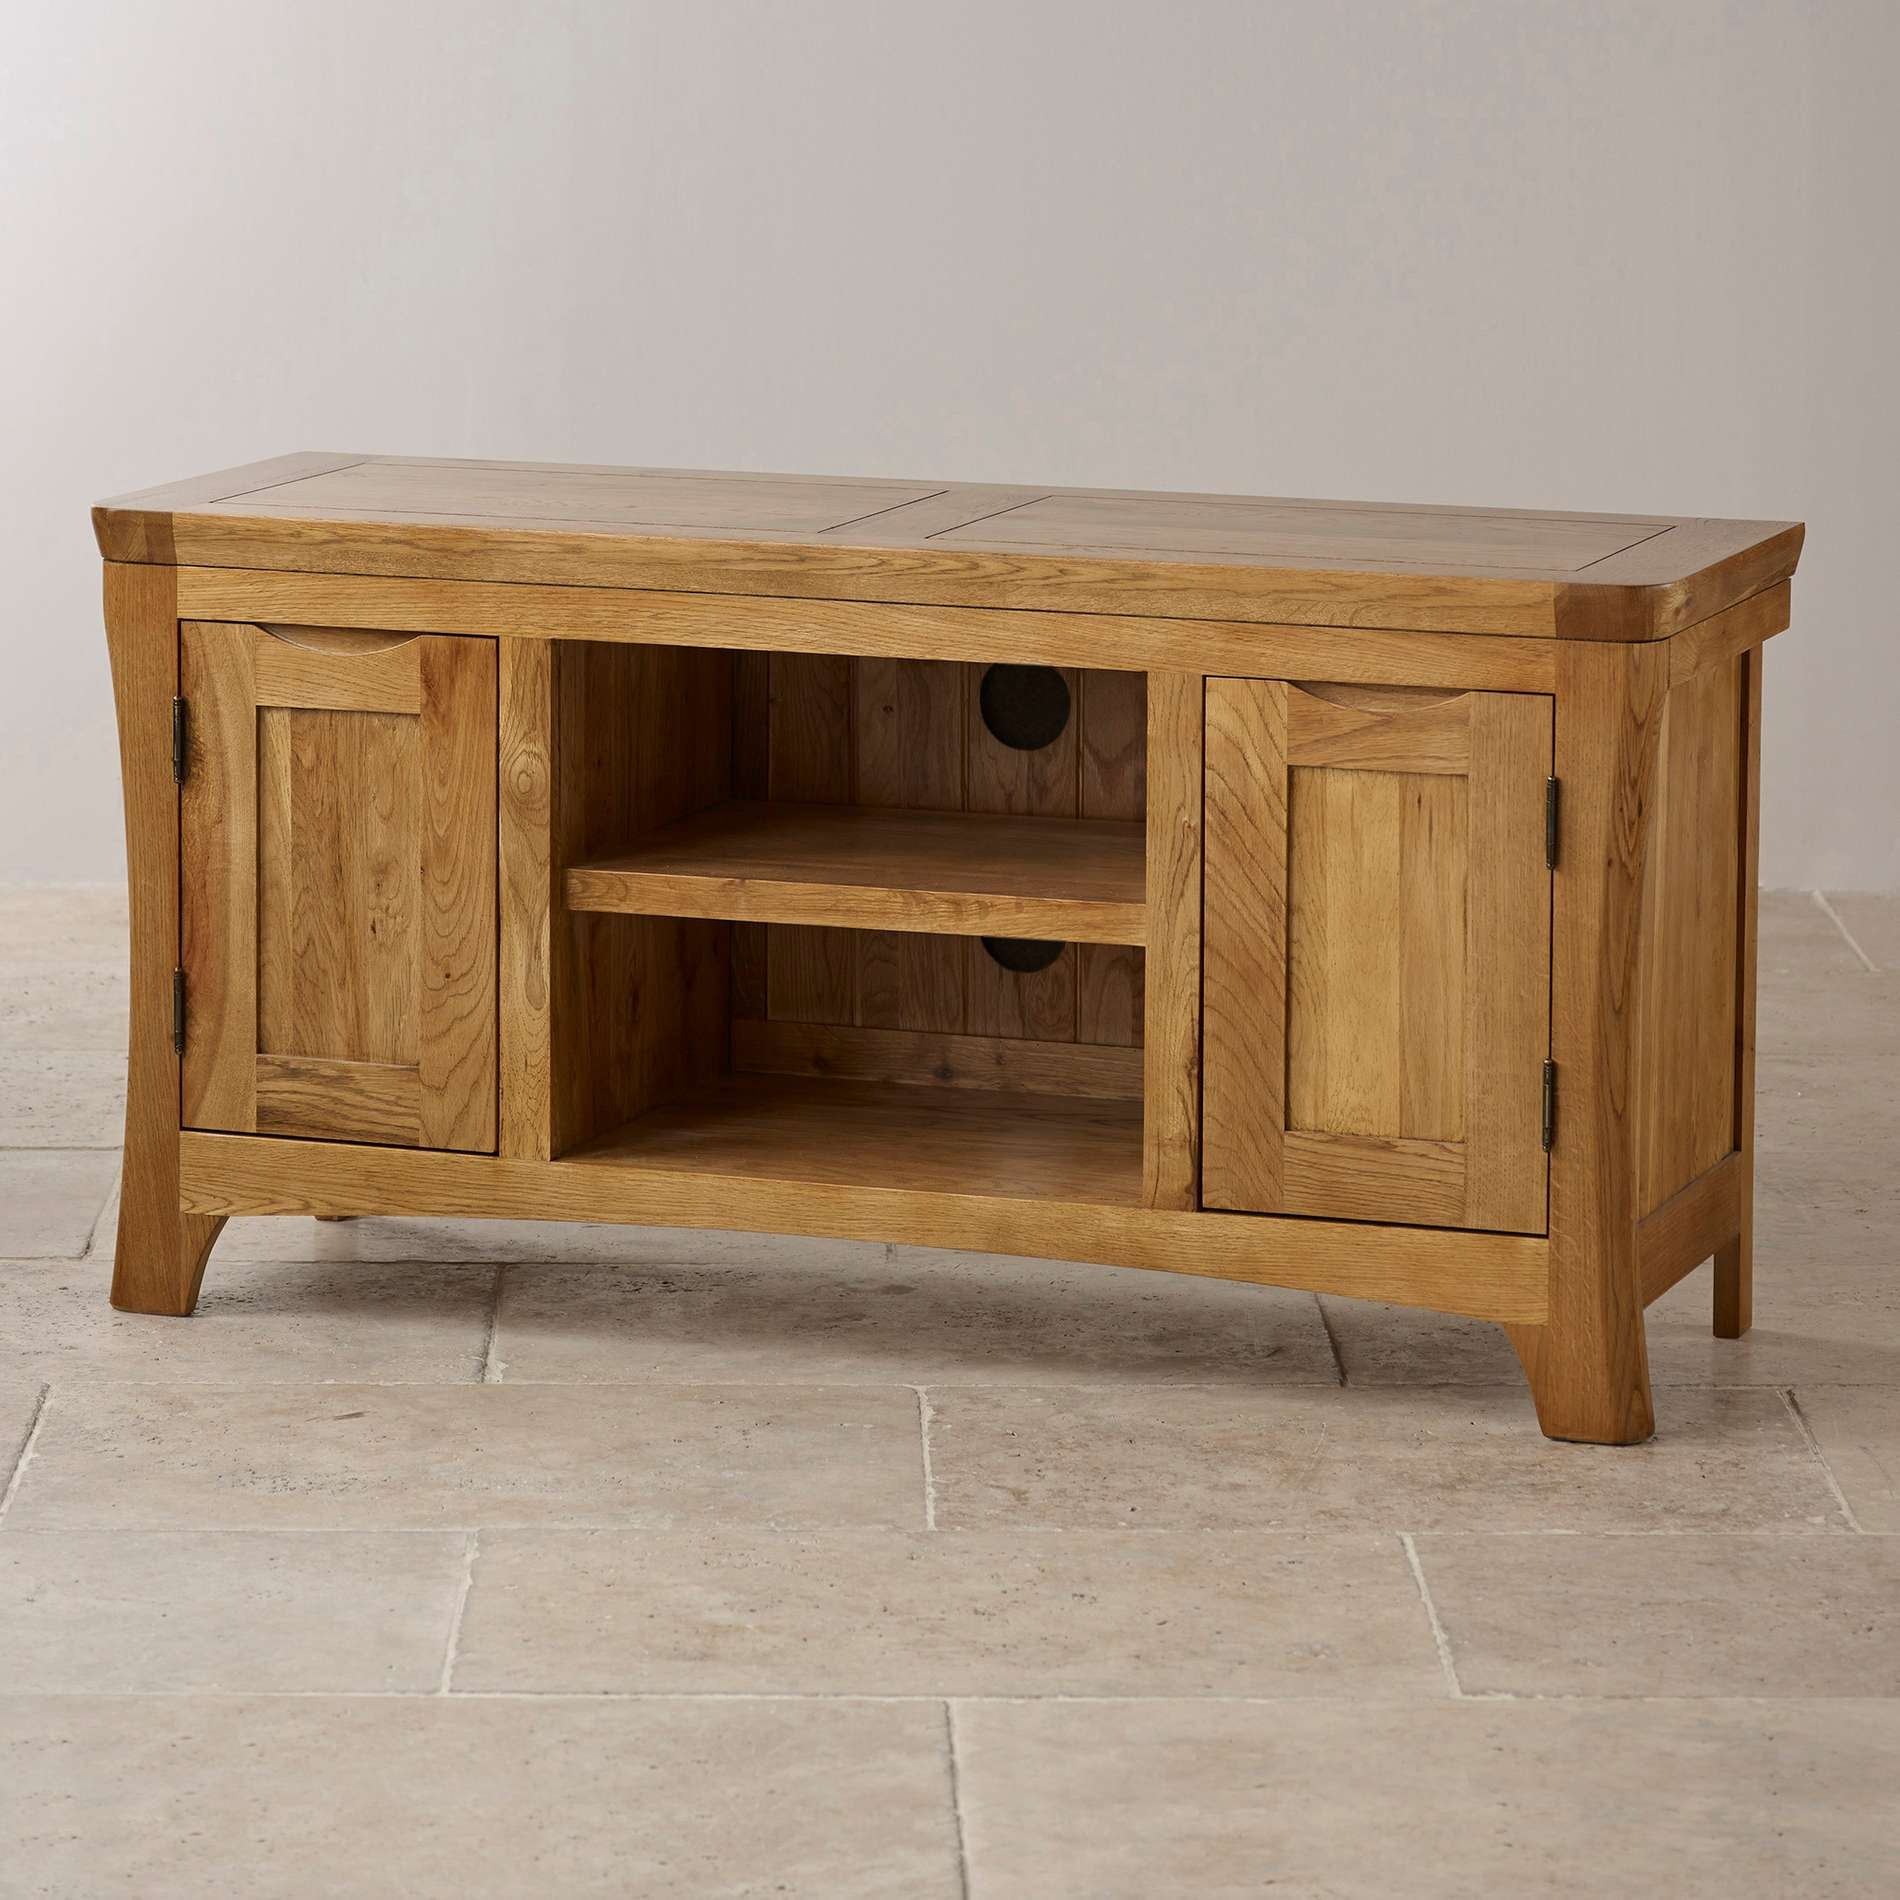 Oak Furniture Tv Cabinet. Stickley Style Tv Stand 44 Tv Console 50 In Rustic Wood Tv Cabinets (Gallery 18 of 20)